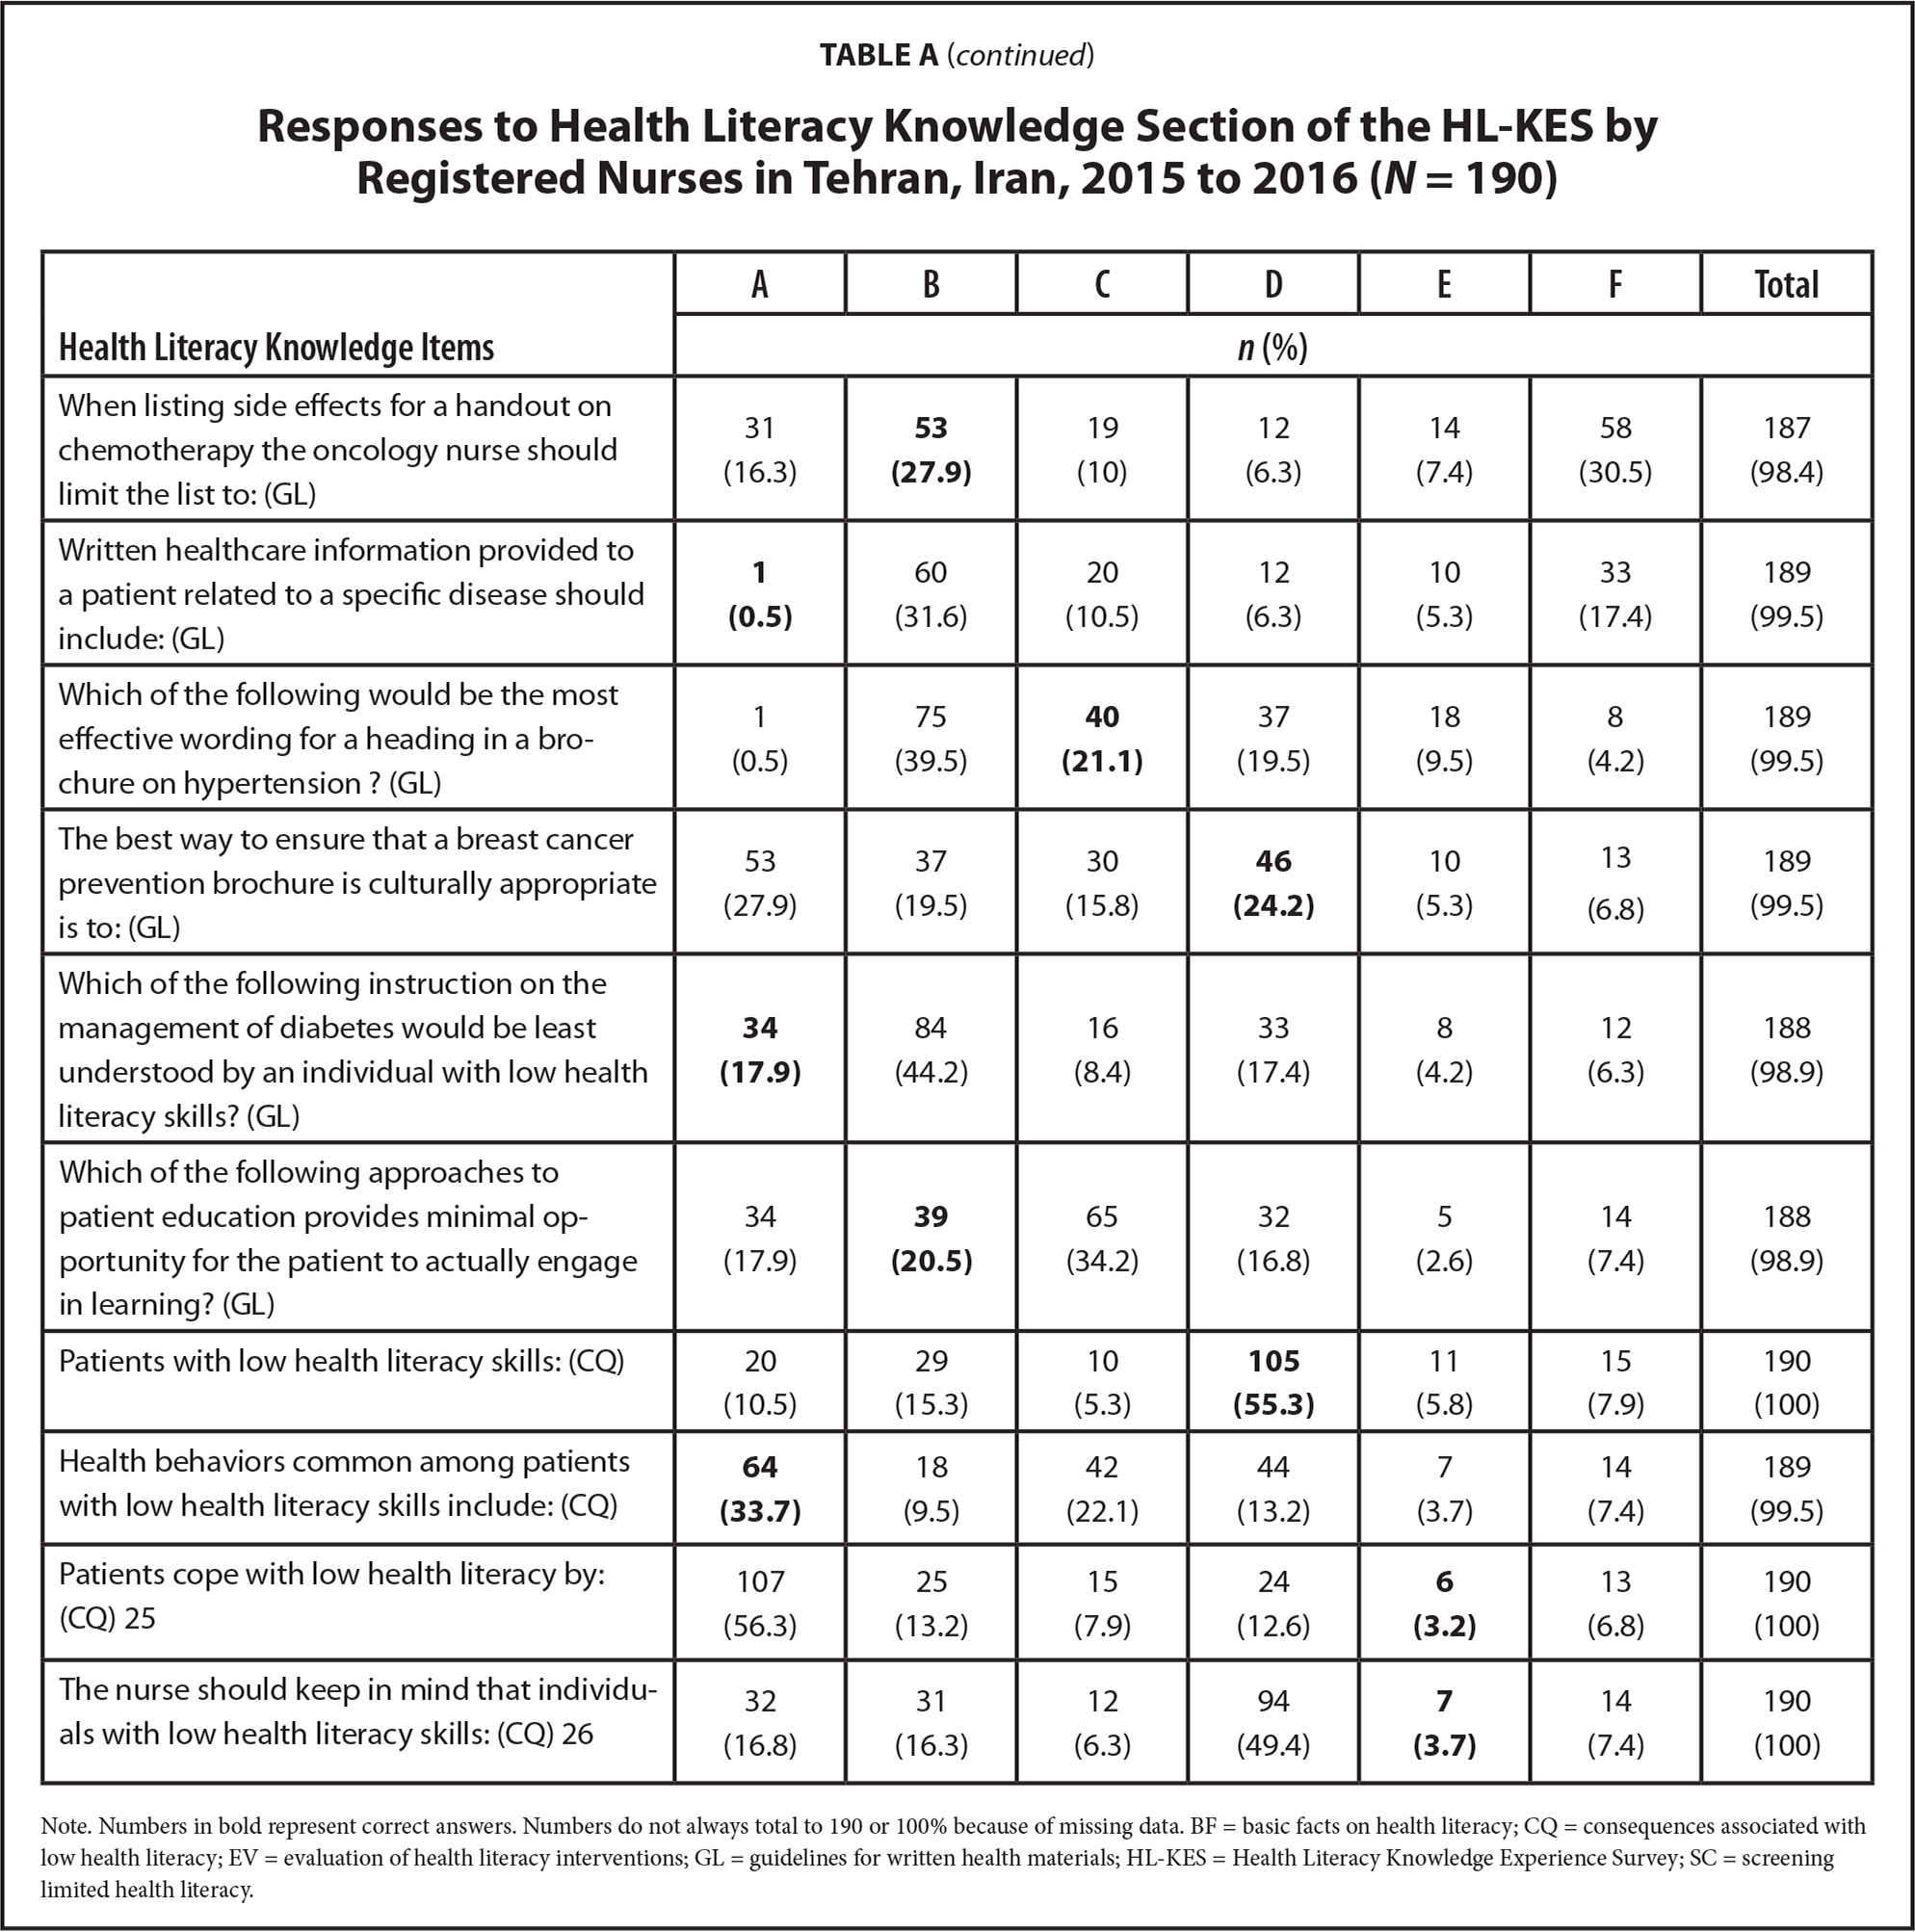 Responses to Health Literacy Knowledge Section of the HL-KES by Registered Nurses in Tehran, Iran, 2015 to 2016 (N = 190)